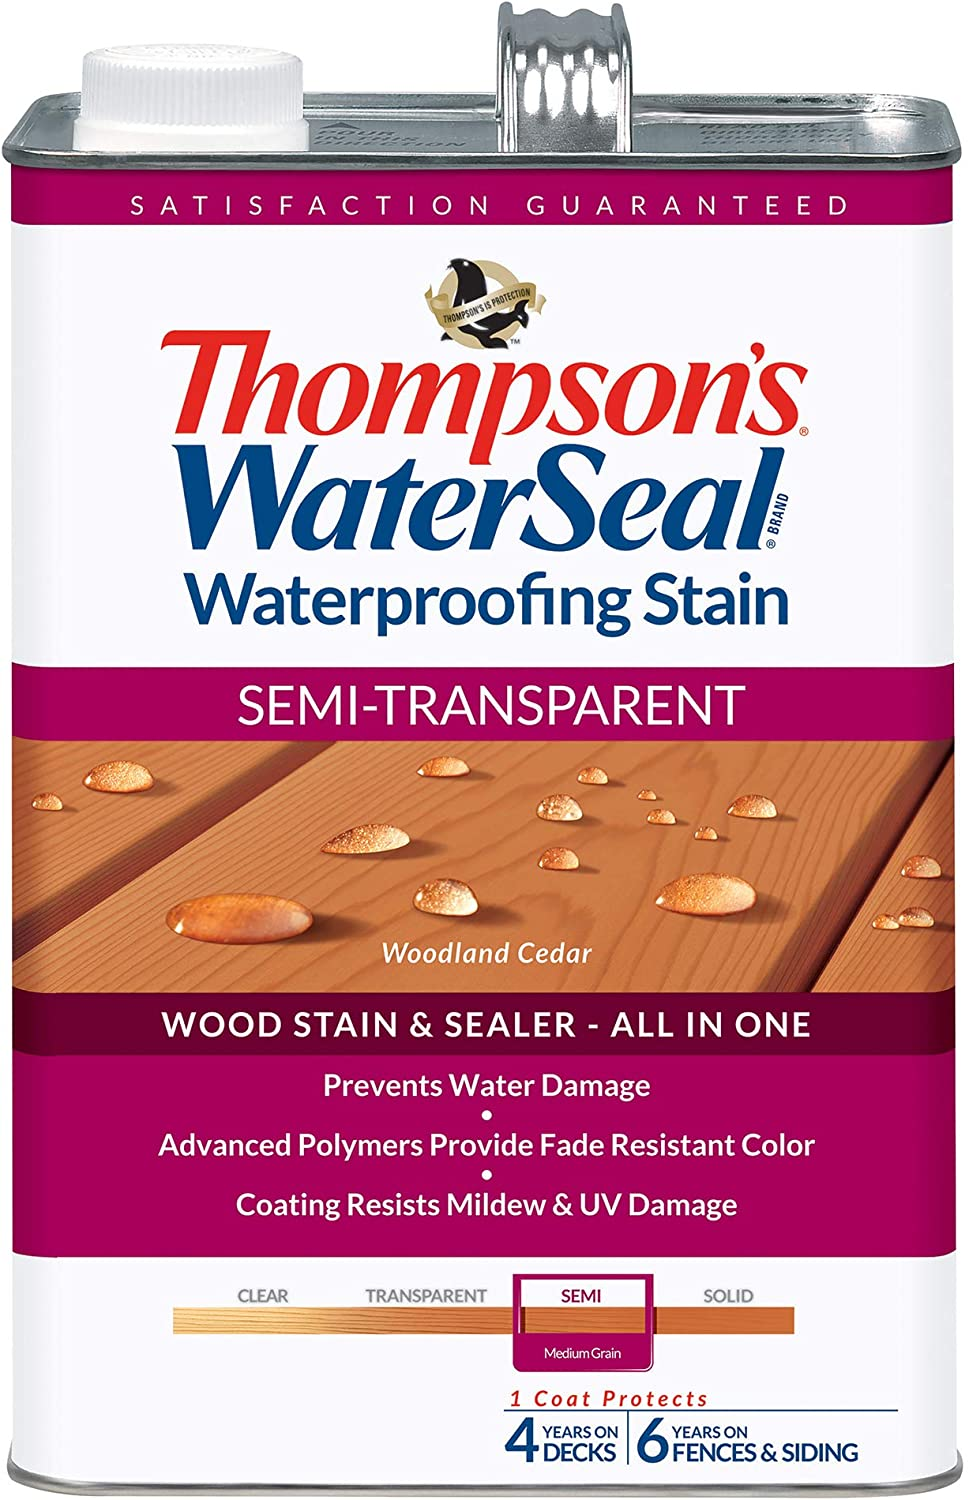 Thompson's WaterSeal Semi-Transparent Waterproofing Wood Stain